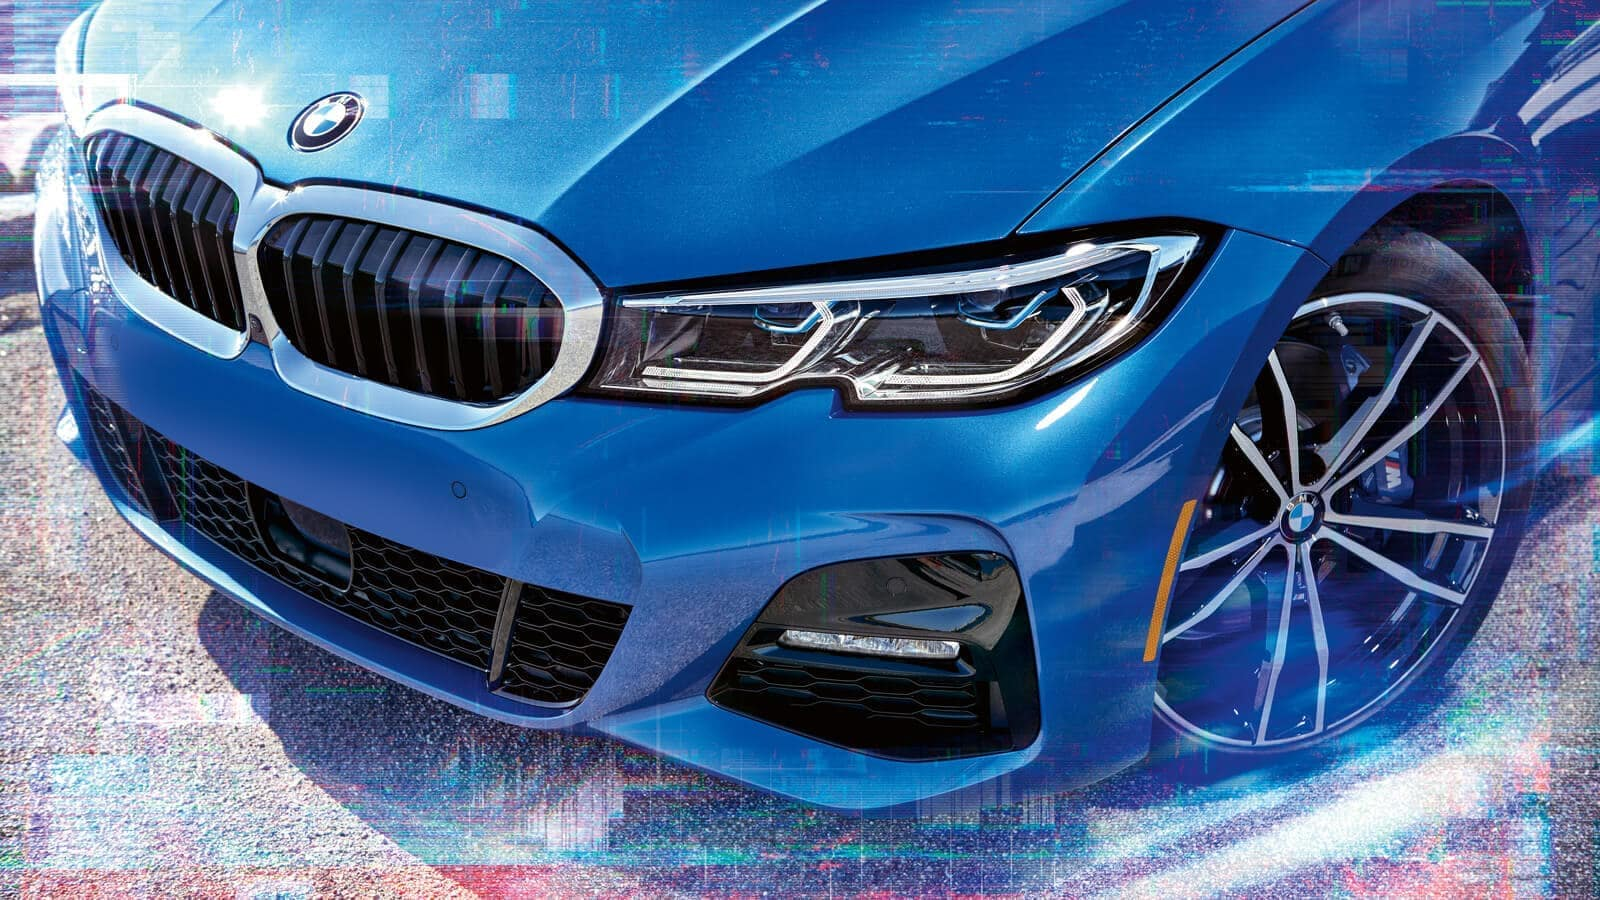 2019 BMW 3 Series portimao blue metallic